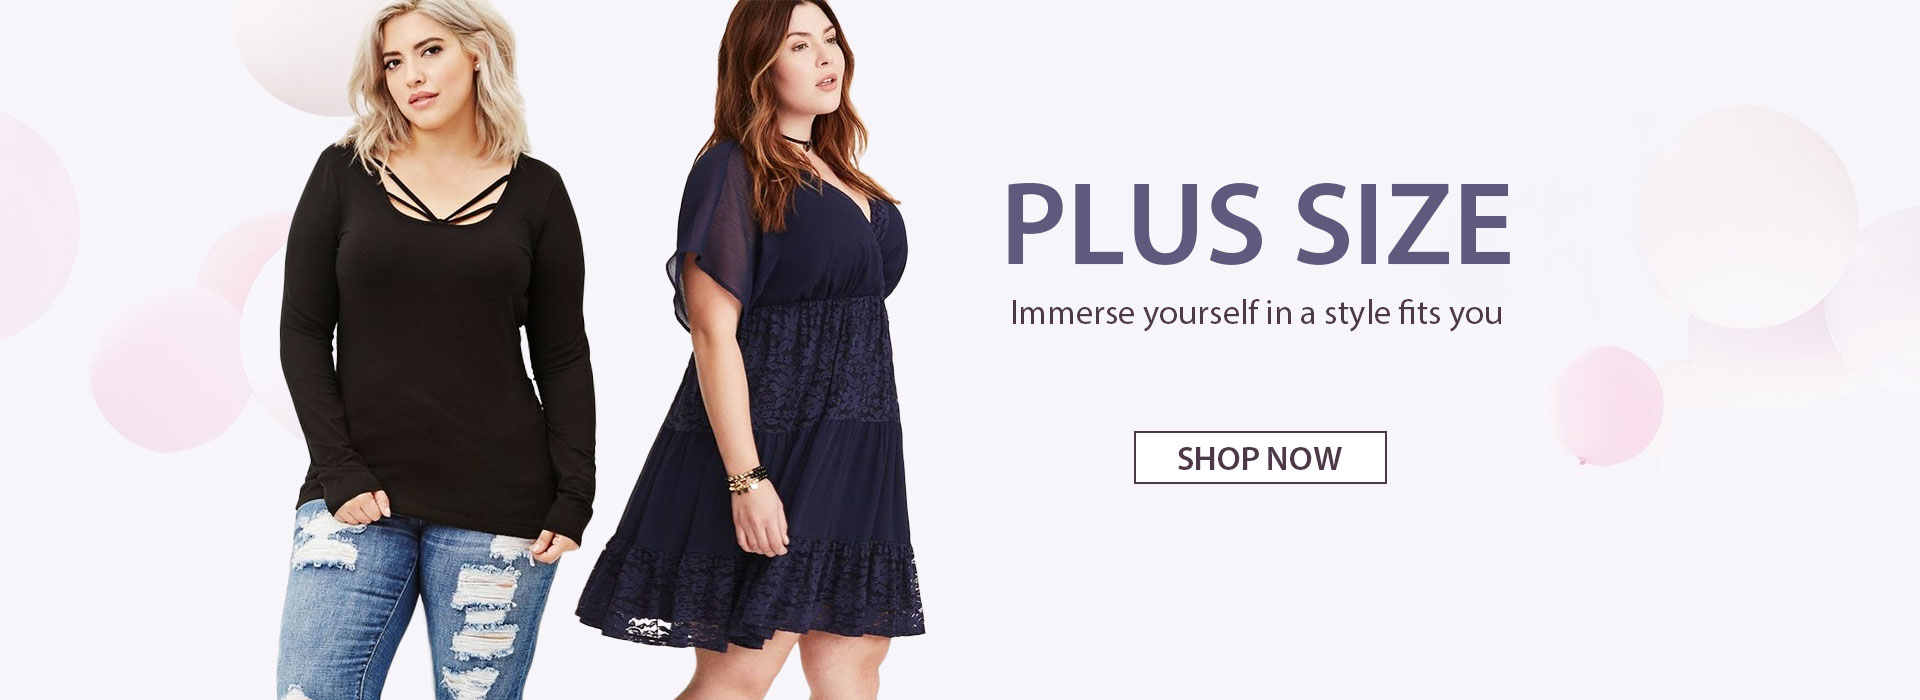 plus-size-clothing